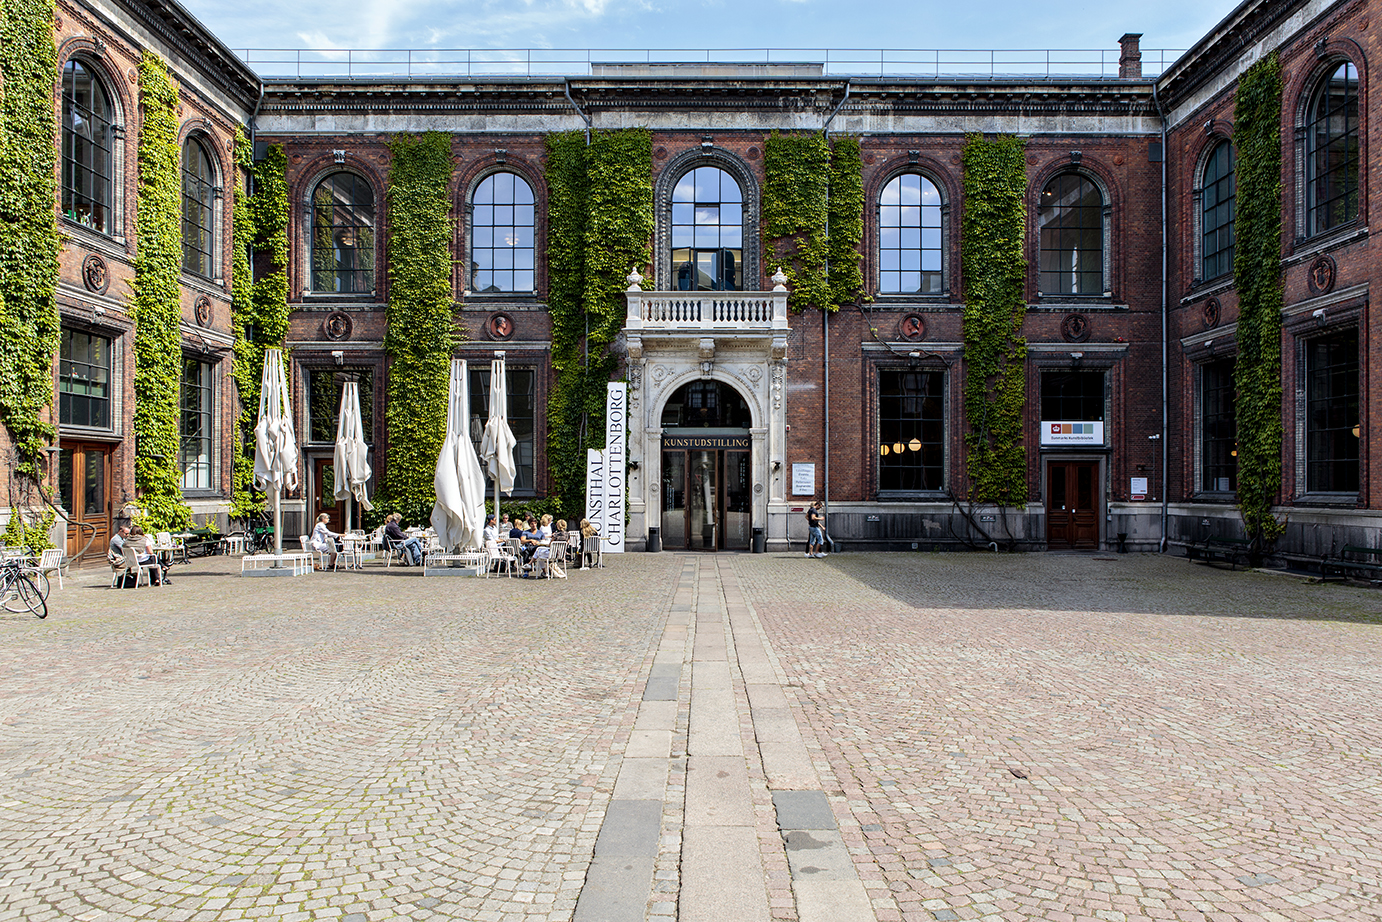 Kunsthal Charlottenborg - Largest and most beautiful exhibition spaces for contemporary art in Northern Europe.Nyhavn 2, DK-1051 Copenhagen